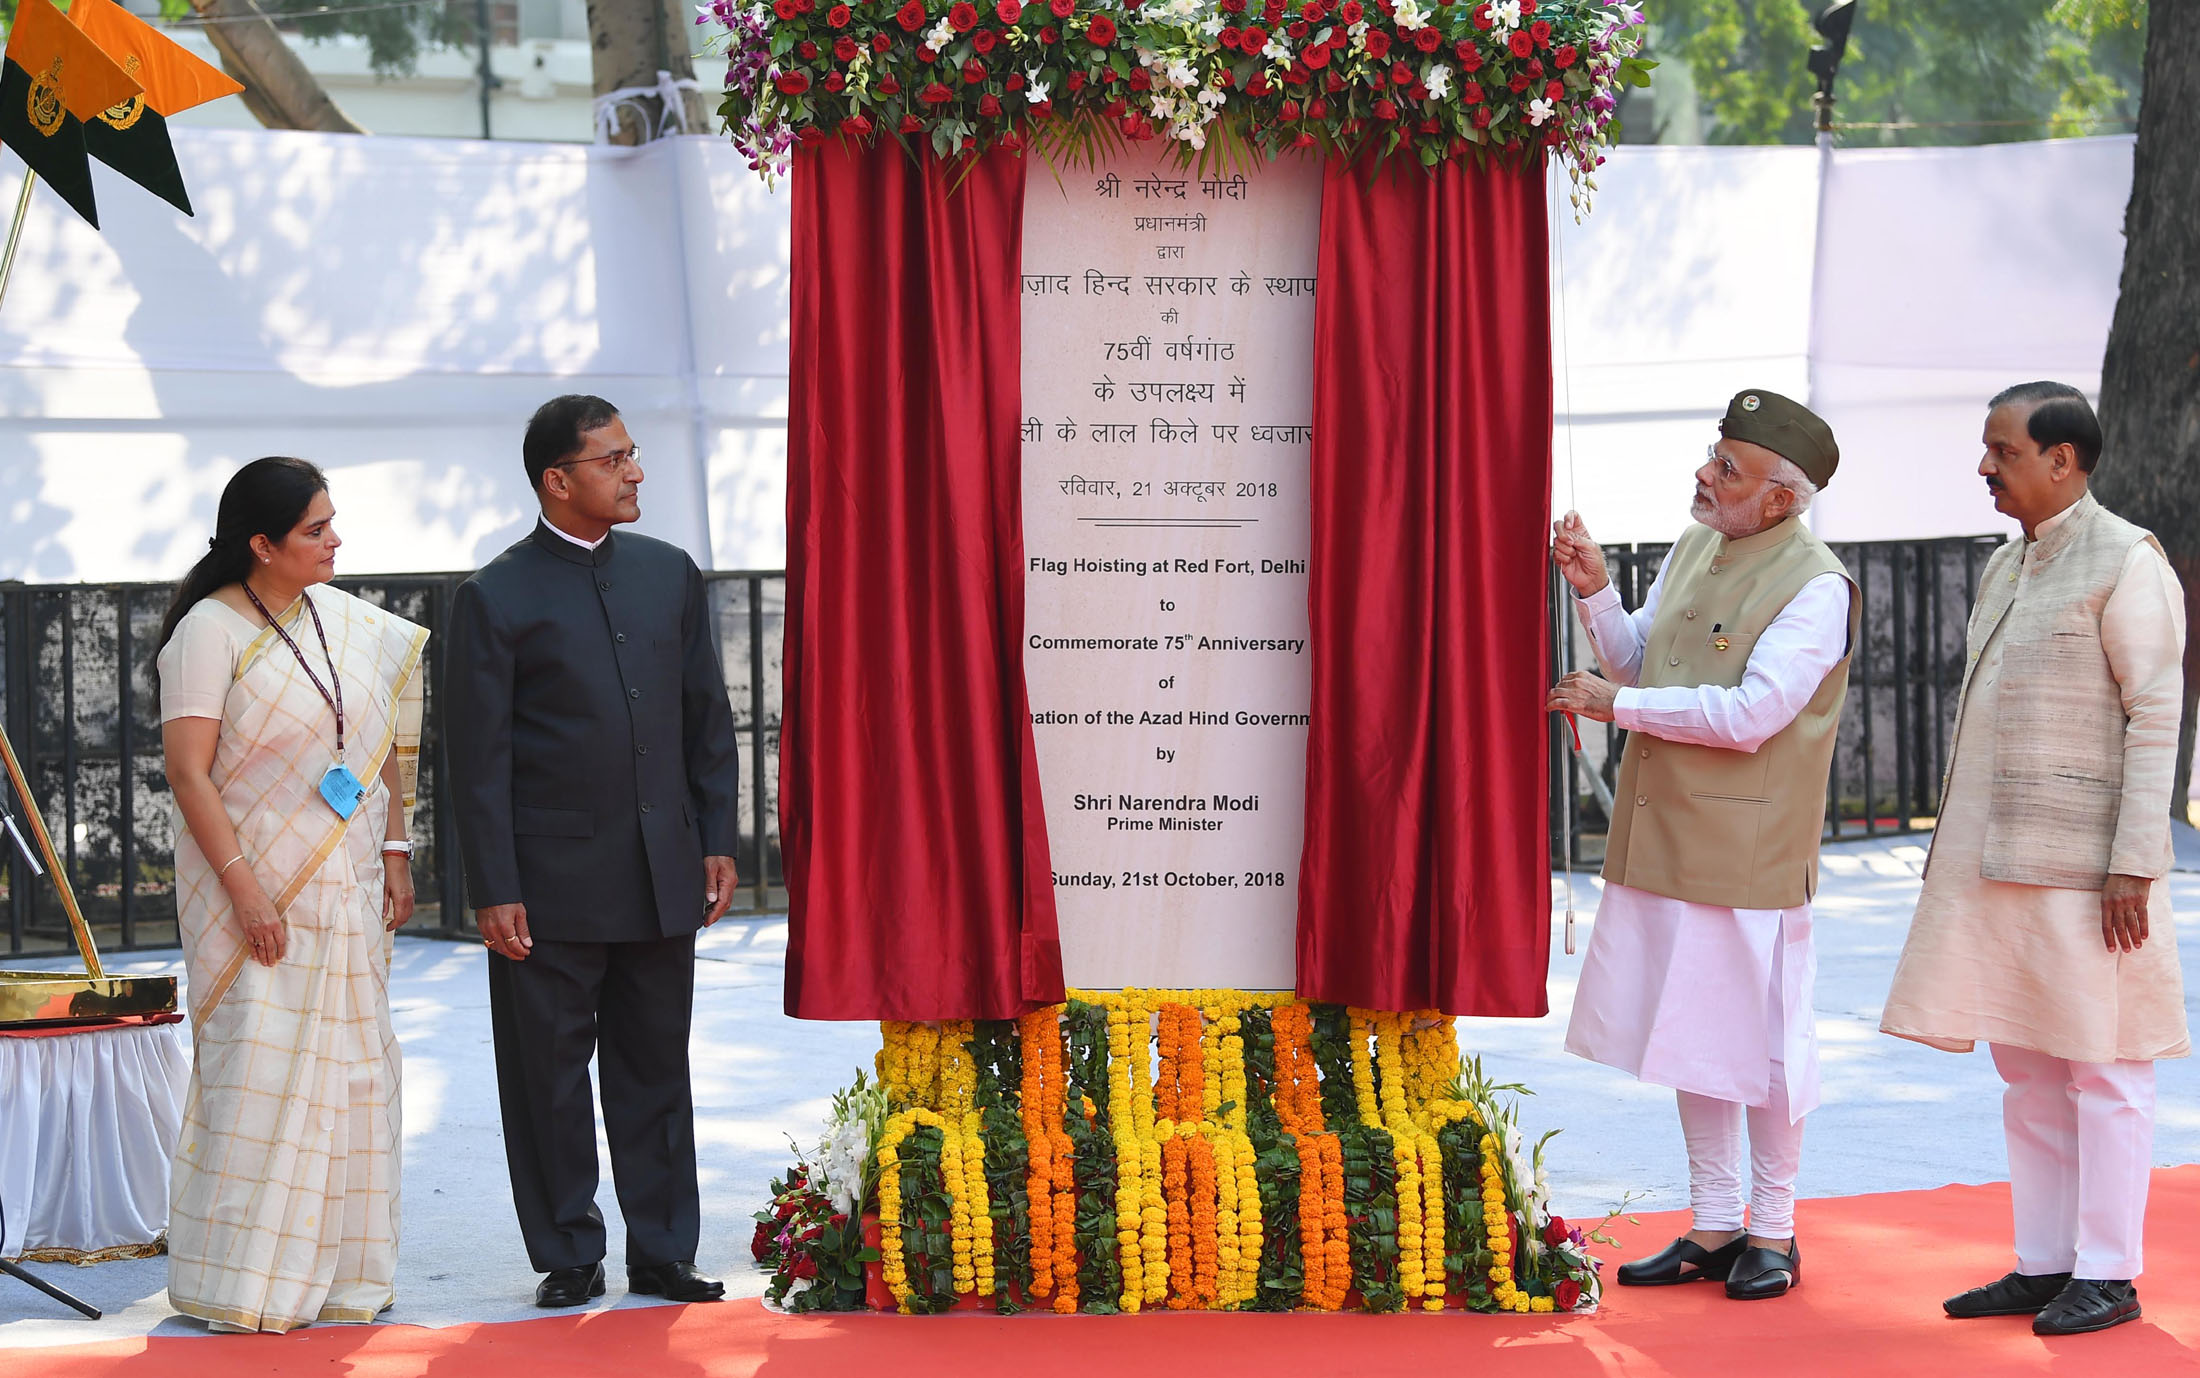 The Prime Minister, Shri Narendra Modi unveiling the plaque at the National Flag hoisting ceremony to commemorate the 75th anniversary formation of the Azad Hind Government, at Red Fort, Delhi on October 21, 2018. The Minister of State for Culture (I/C) and Environment, Forest & Climate Change, Dr. Mahesh Sharma, the Secretary, Ministry of Culture, Shri Arun Goel and the DG ASI, Smt. Usha Sharma are also seen.